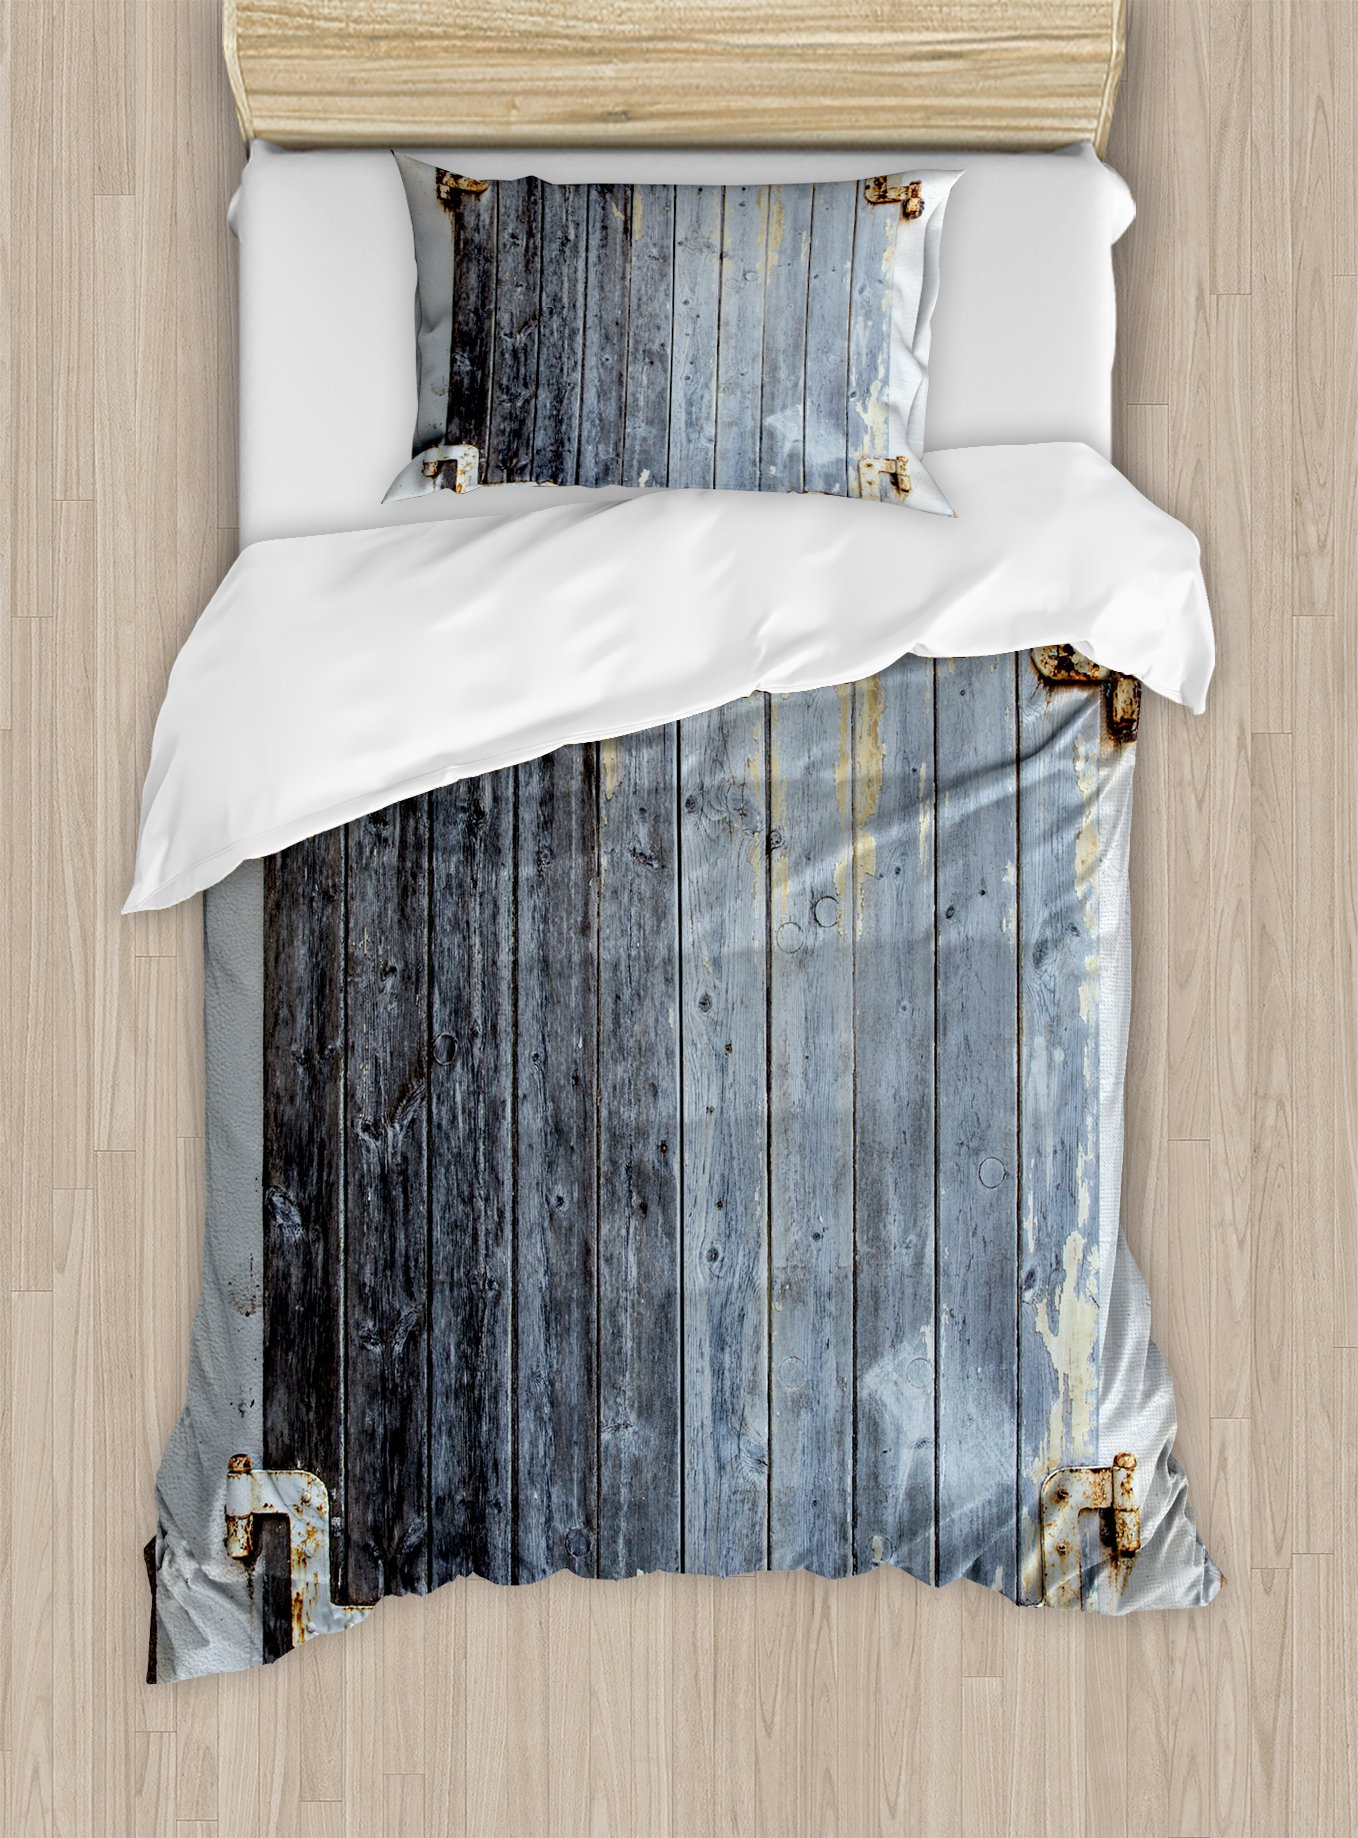 Ambesonne Shutters Duvet Cover Set Twin Size, Wooden Window Shutters with Shabby Paint Rusty Antique Traditional Village Picture, Decorative 2 Piece Bedding Set with 1 Pillow Sham, Charcoal